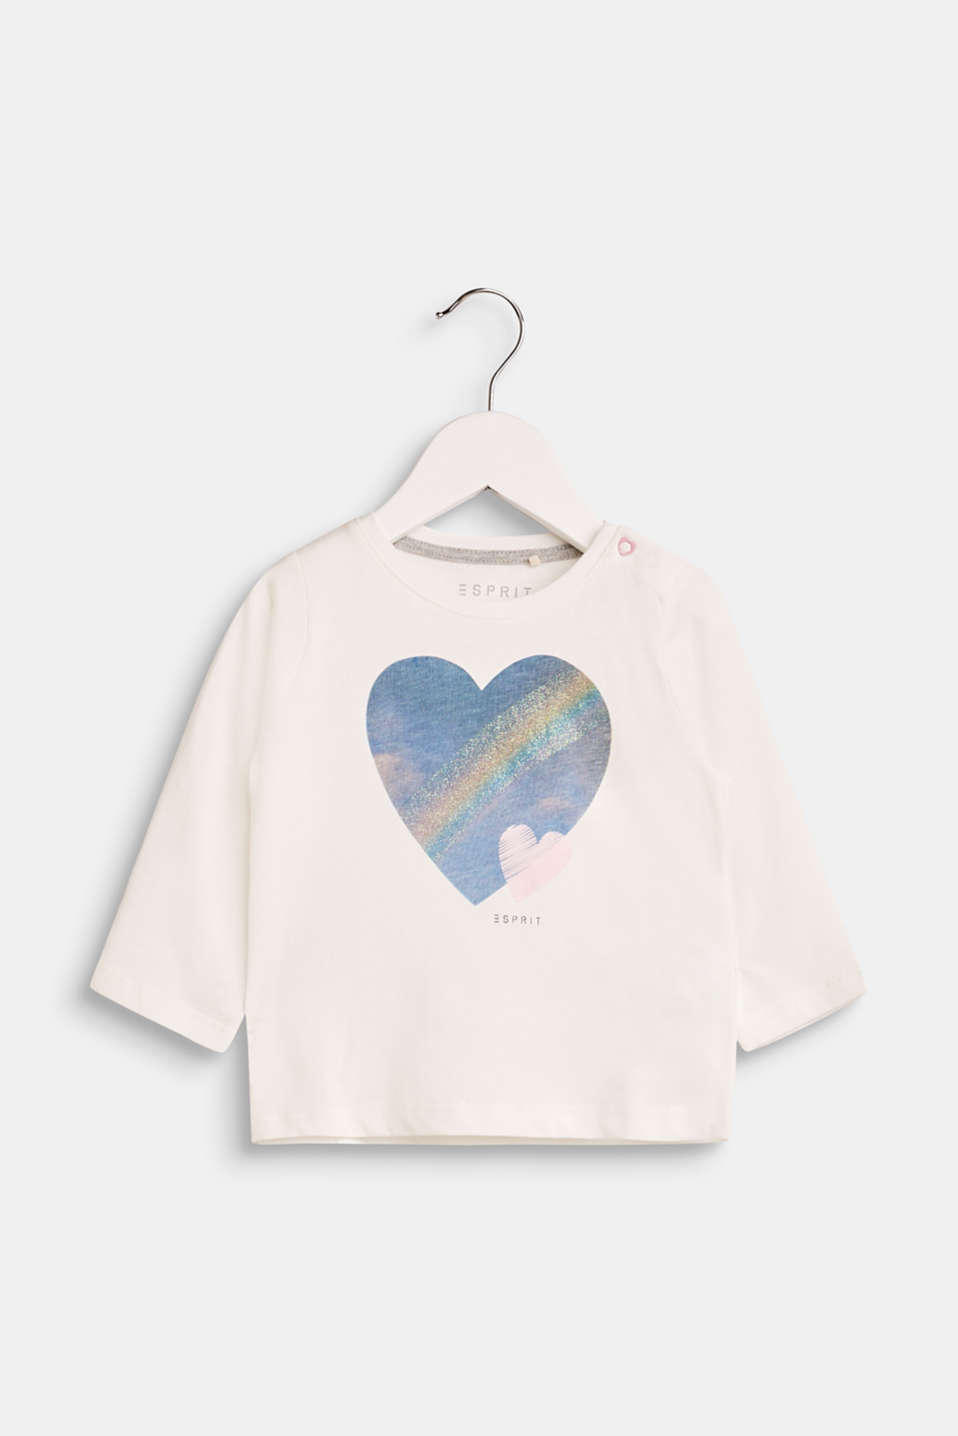 Esprit - Long sleeve top with a heart appliqué, 100% cotton